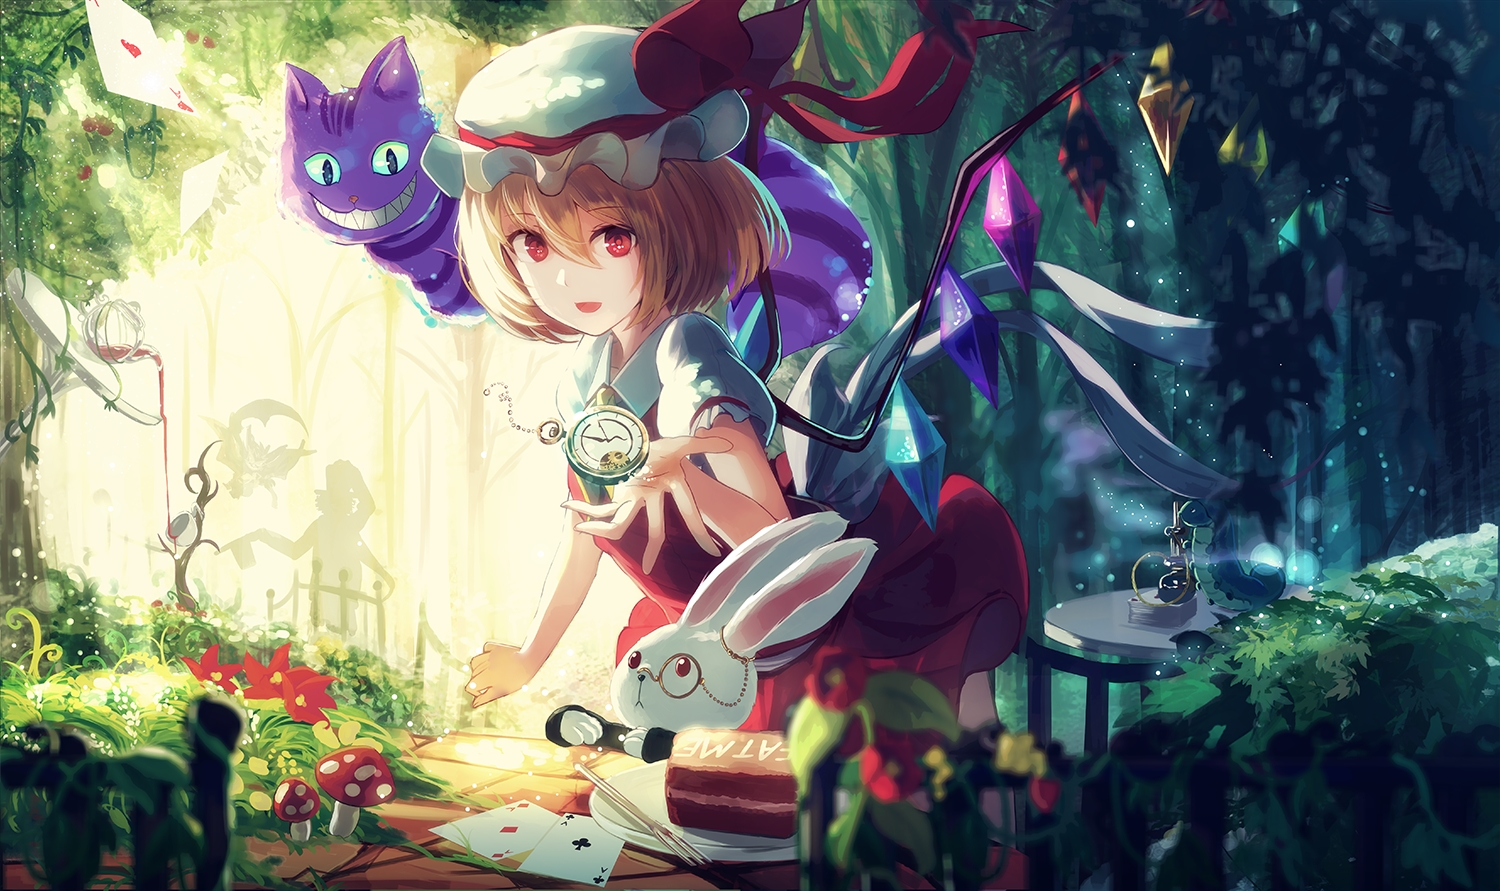 alice_in_wonderland animal blonde_hair cat cheshire_cat crossover drink flandre_scarlet food hat nakaichi_(ridil) rabbit red_eyes ribbons short_hair silhouette touhou vampire white_rabbit wings